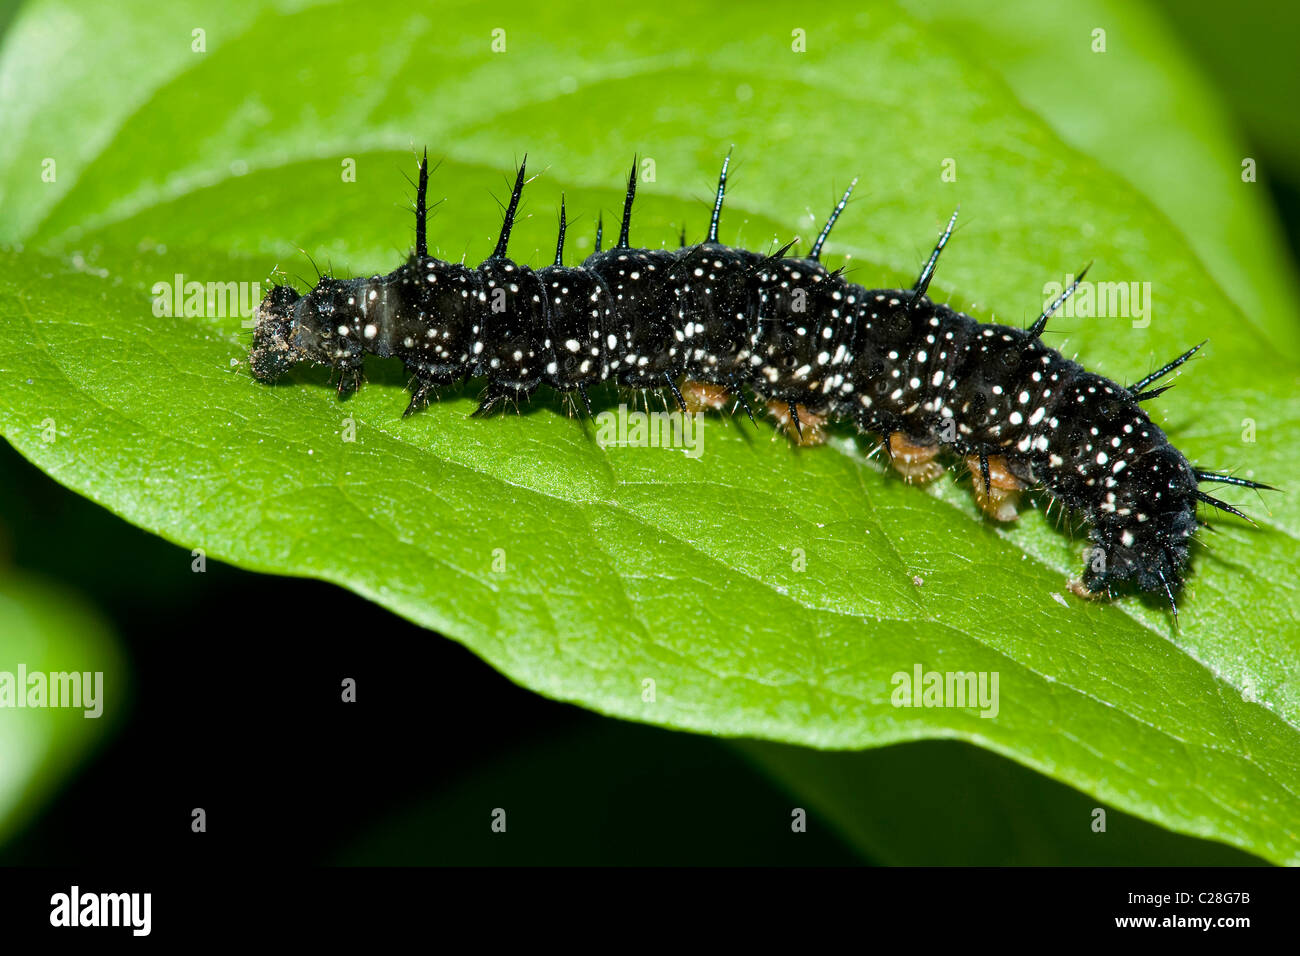 Peacock Butterfly (Inachis io, Nymphalis io), caterpillar on a leaf. - Stock Image